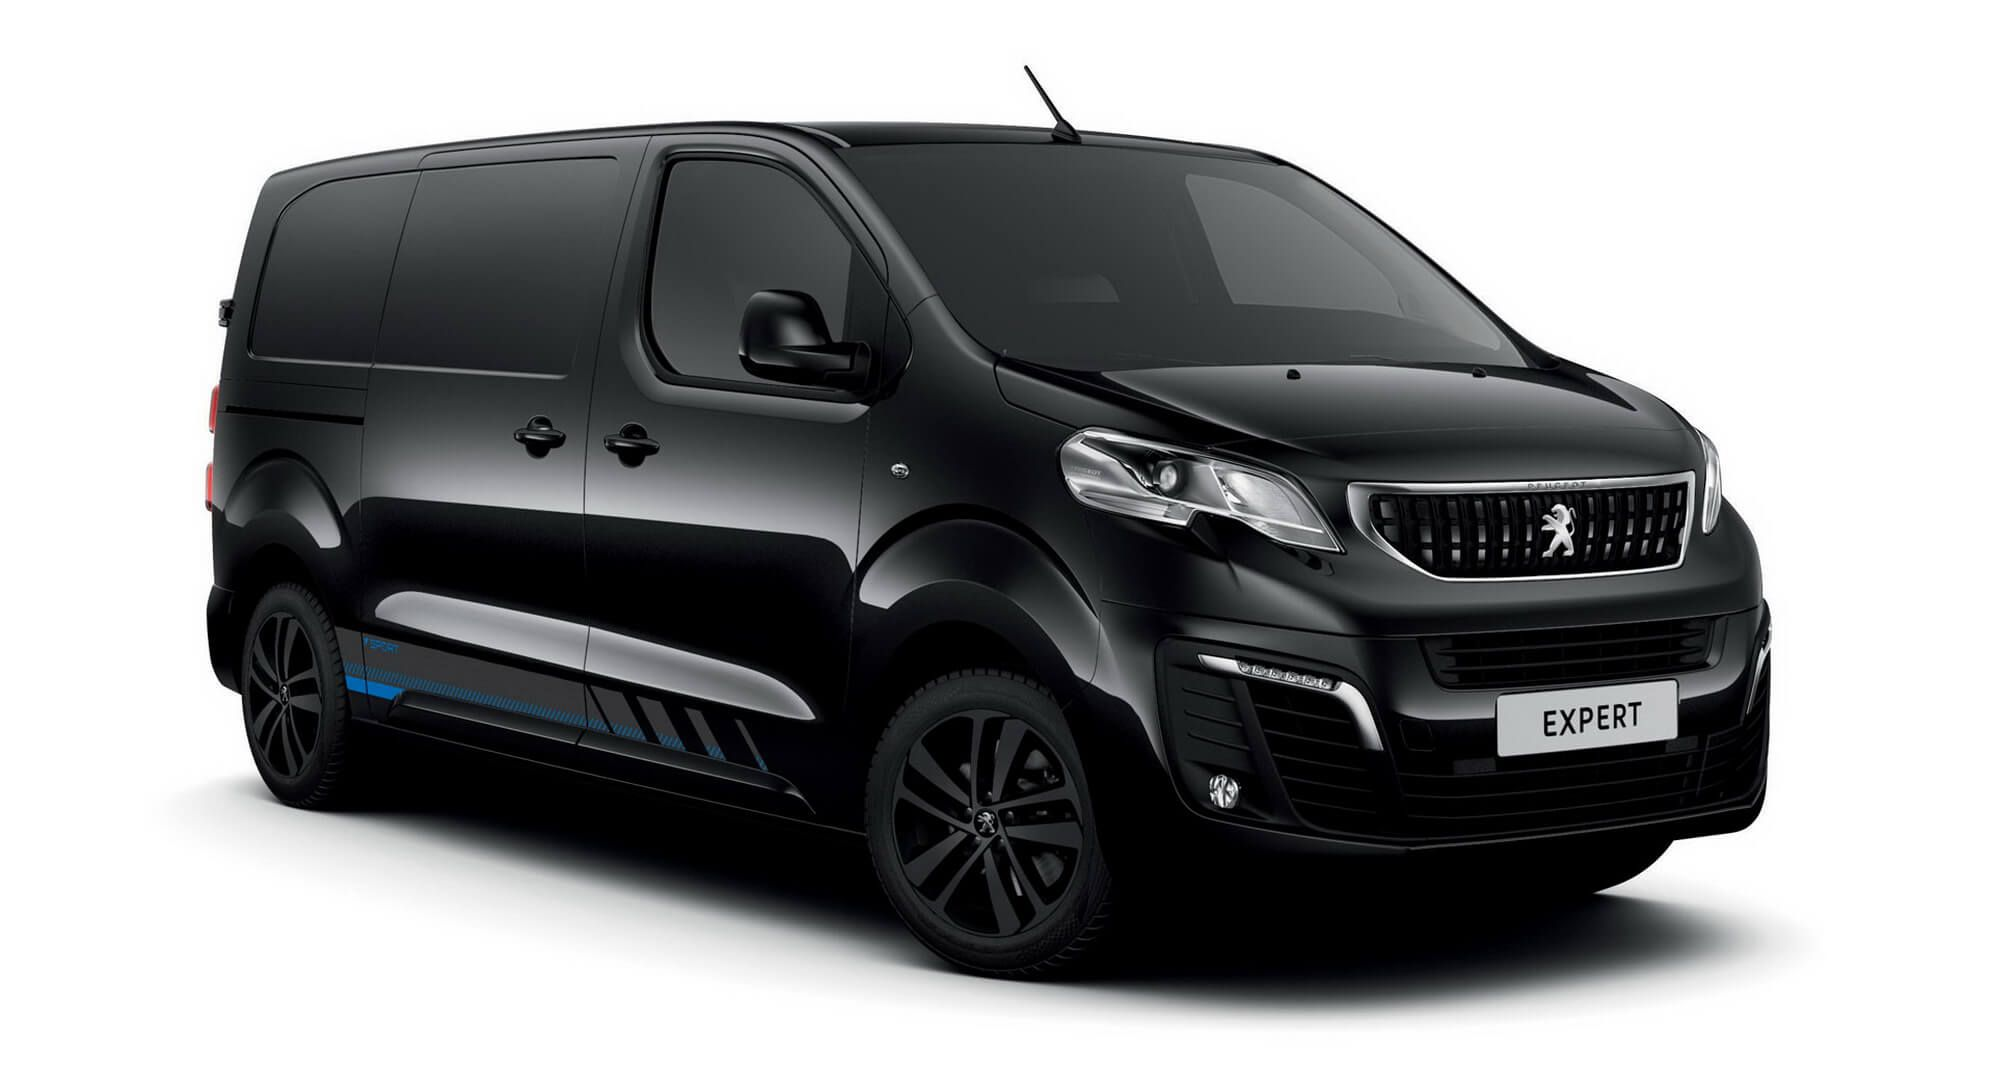 2020 Peugeot Expert Sport Edition Shows Off New Design